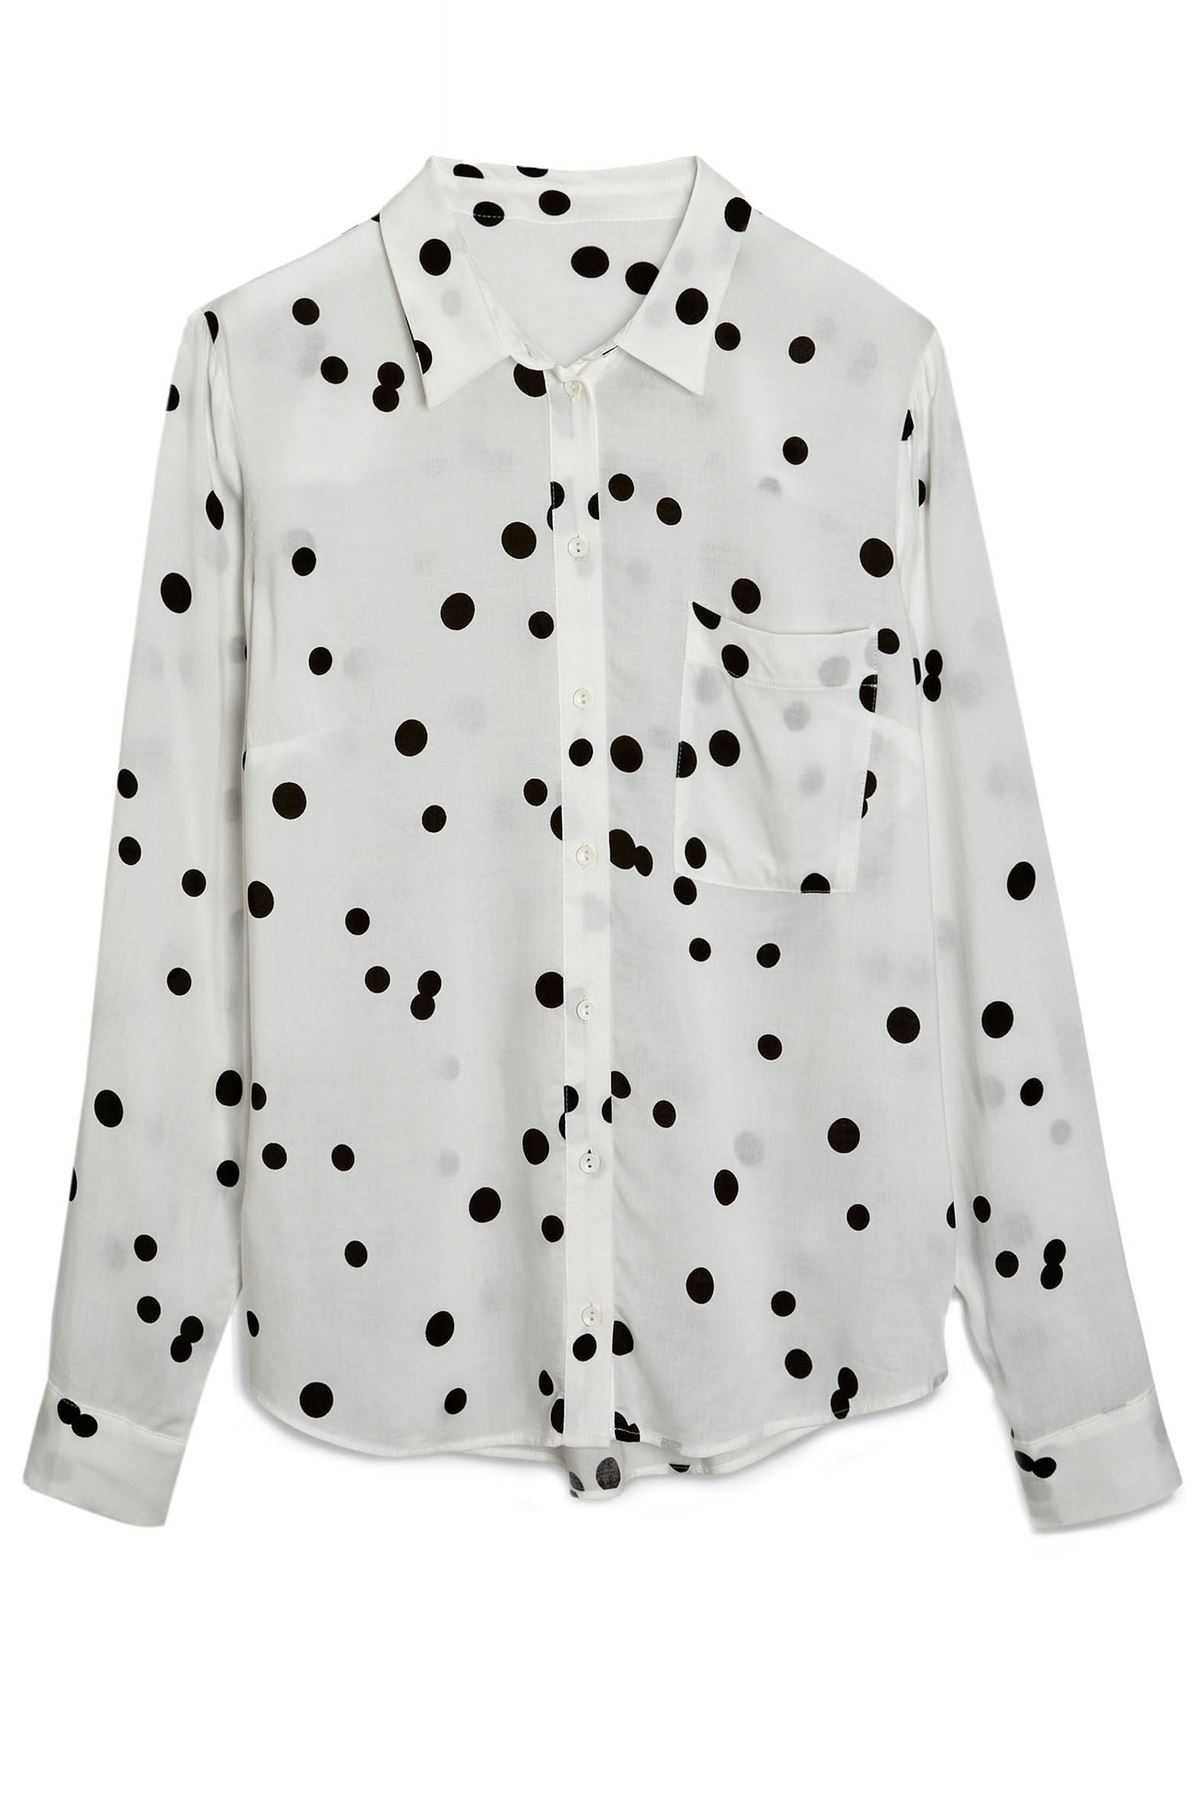 NEXT-Black-White-Spotted-Long-Sleeve-Silky-Shirt-Blouse-SALE-Was-24 thumbnail 16